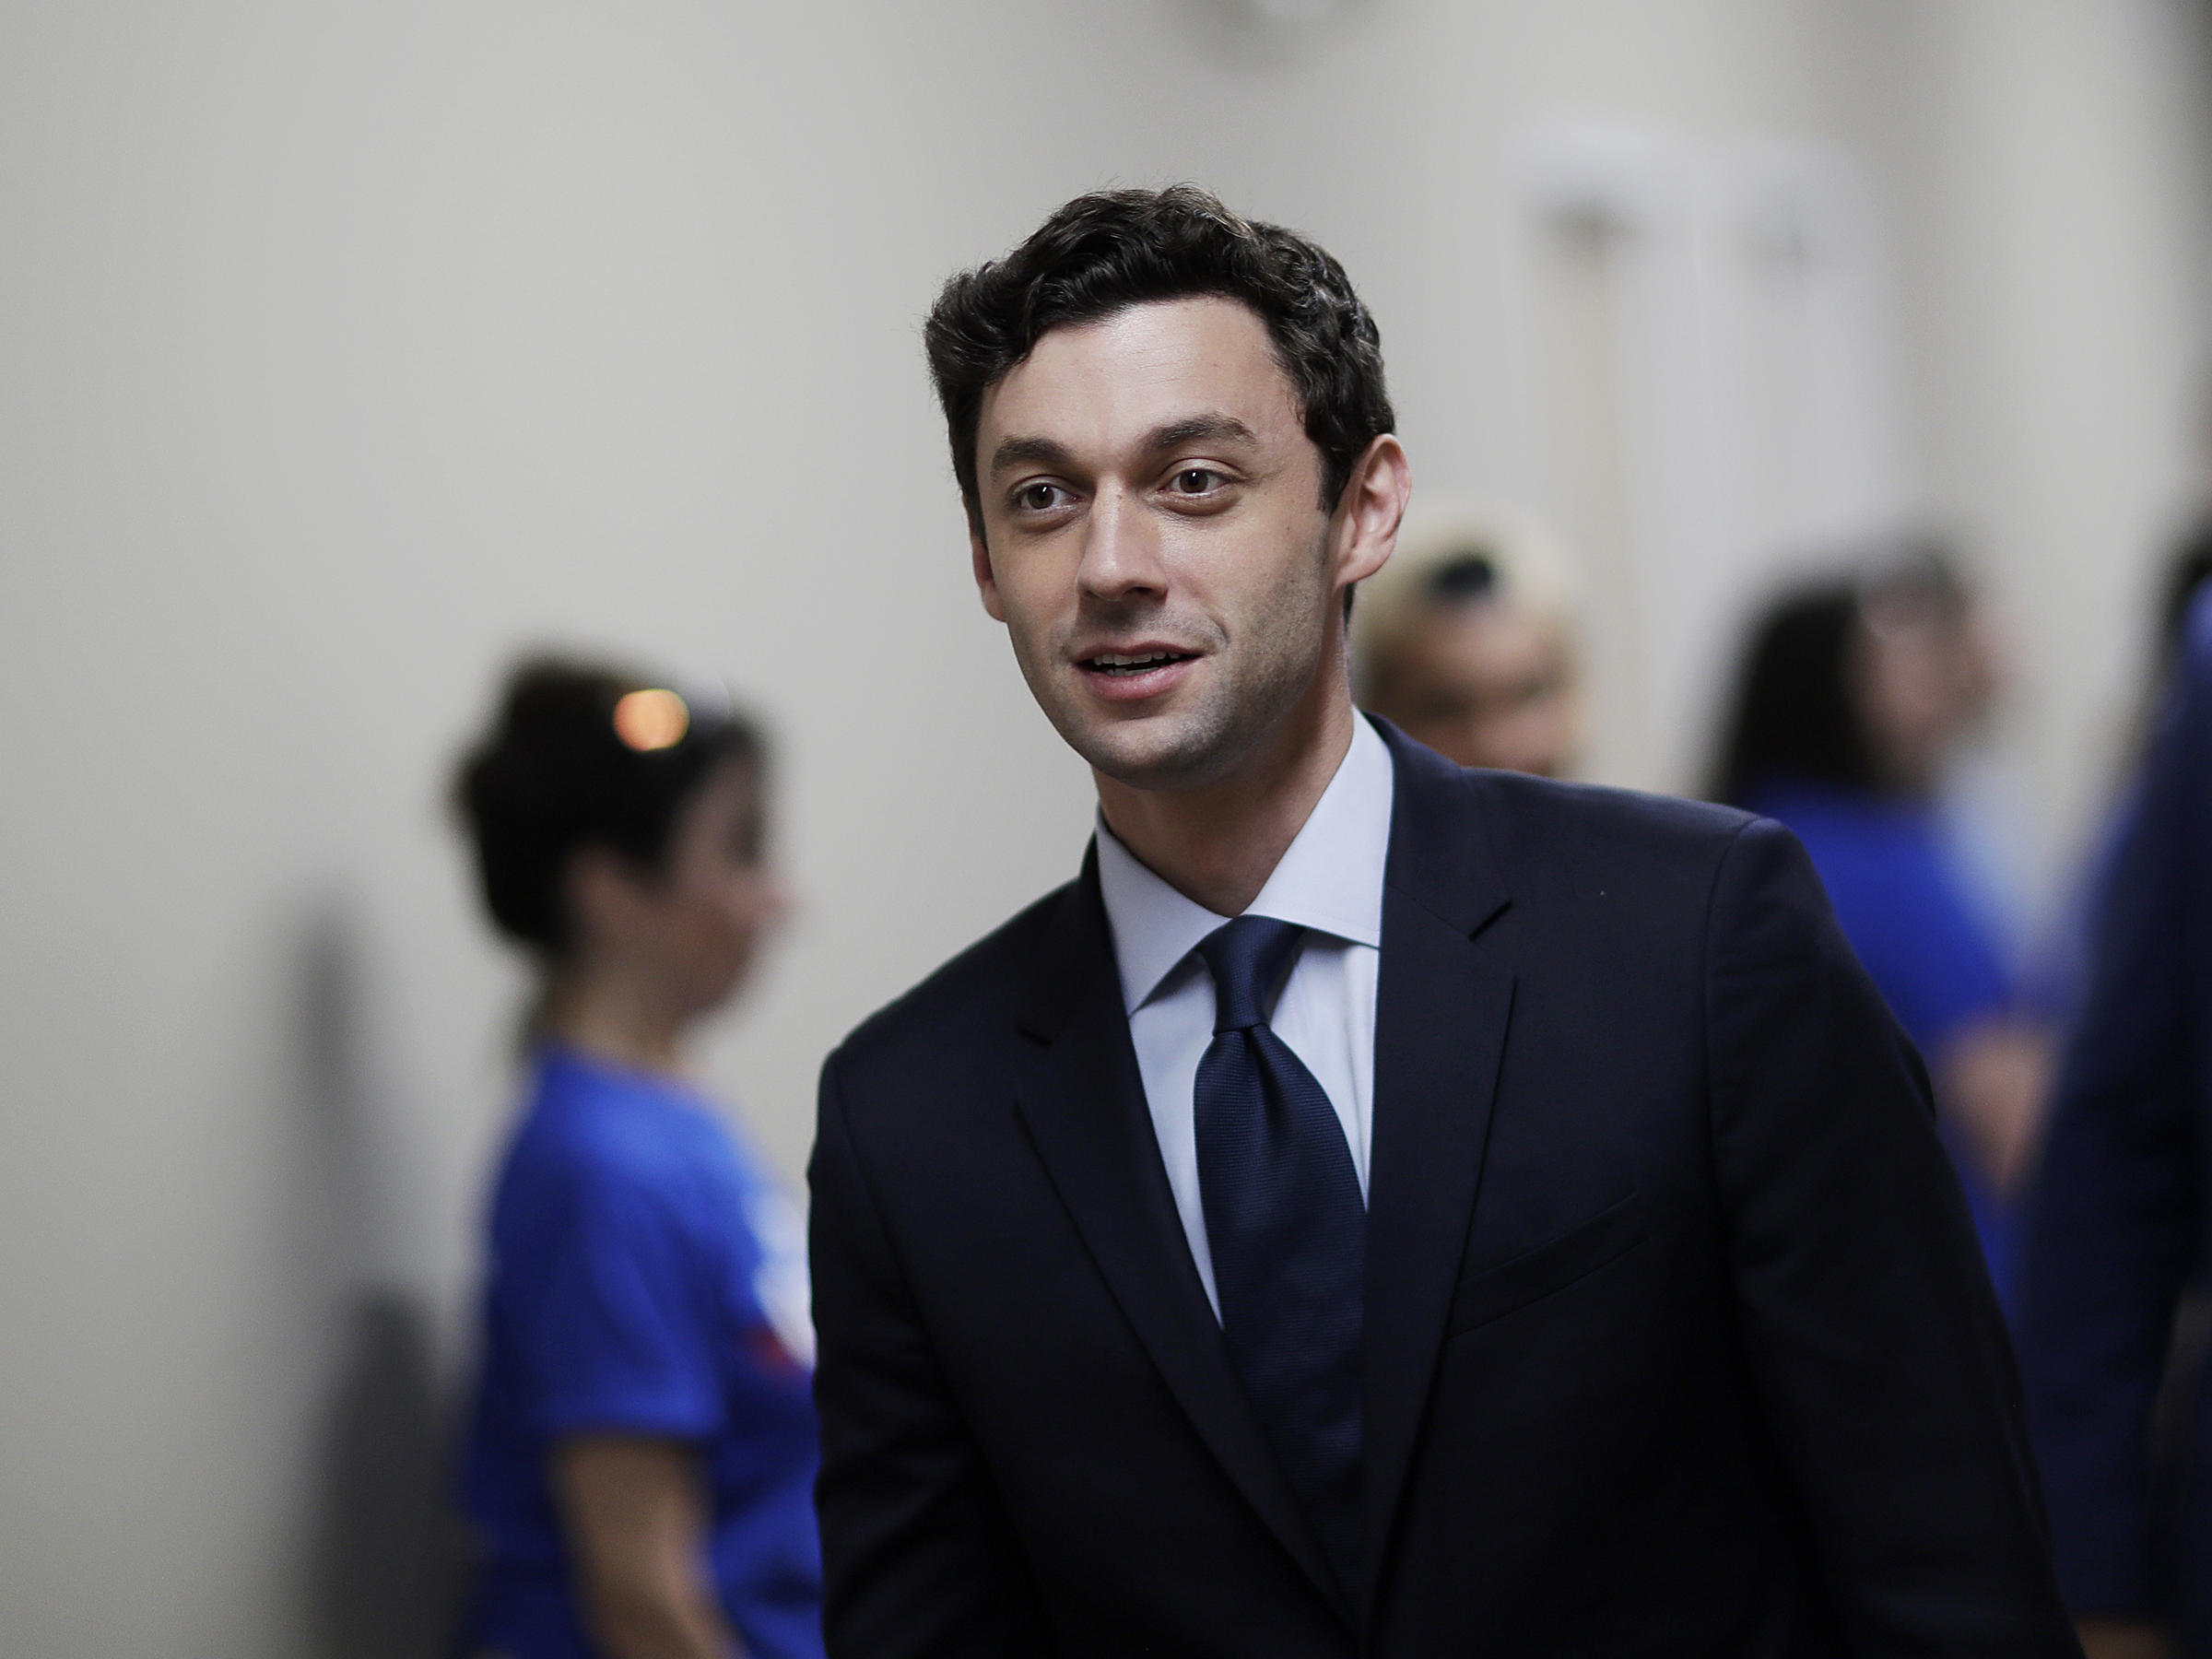 Jon Ossoff Defeats Senator David Perdue, Giving Pro-Abortion Kamala Harris Tie-Breaking Vote